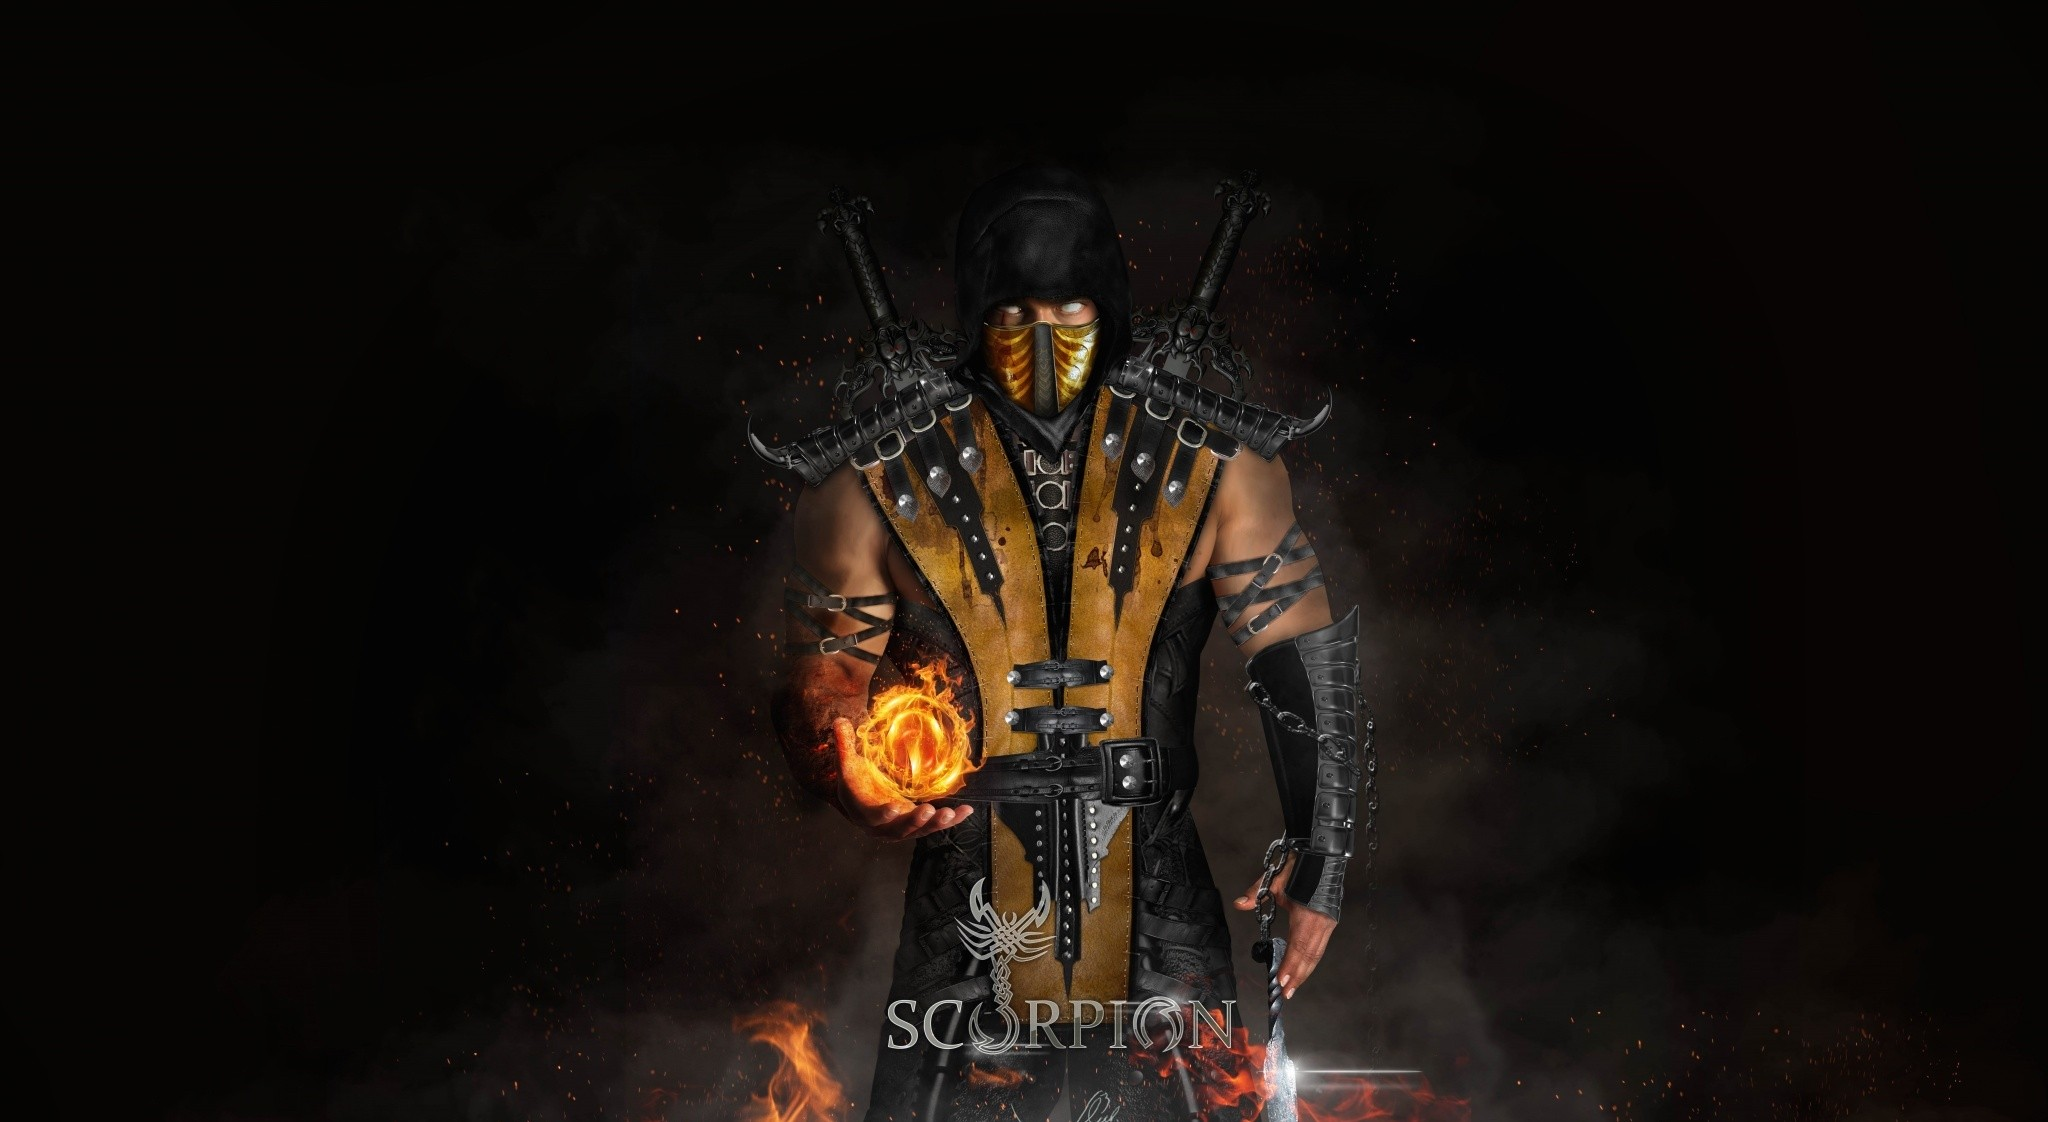 Scorpion Cool Mortal Kombat X Hd Wallpaper for Desktop and Mobiles